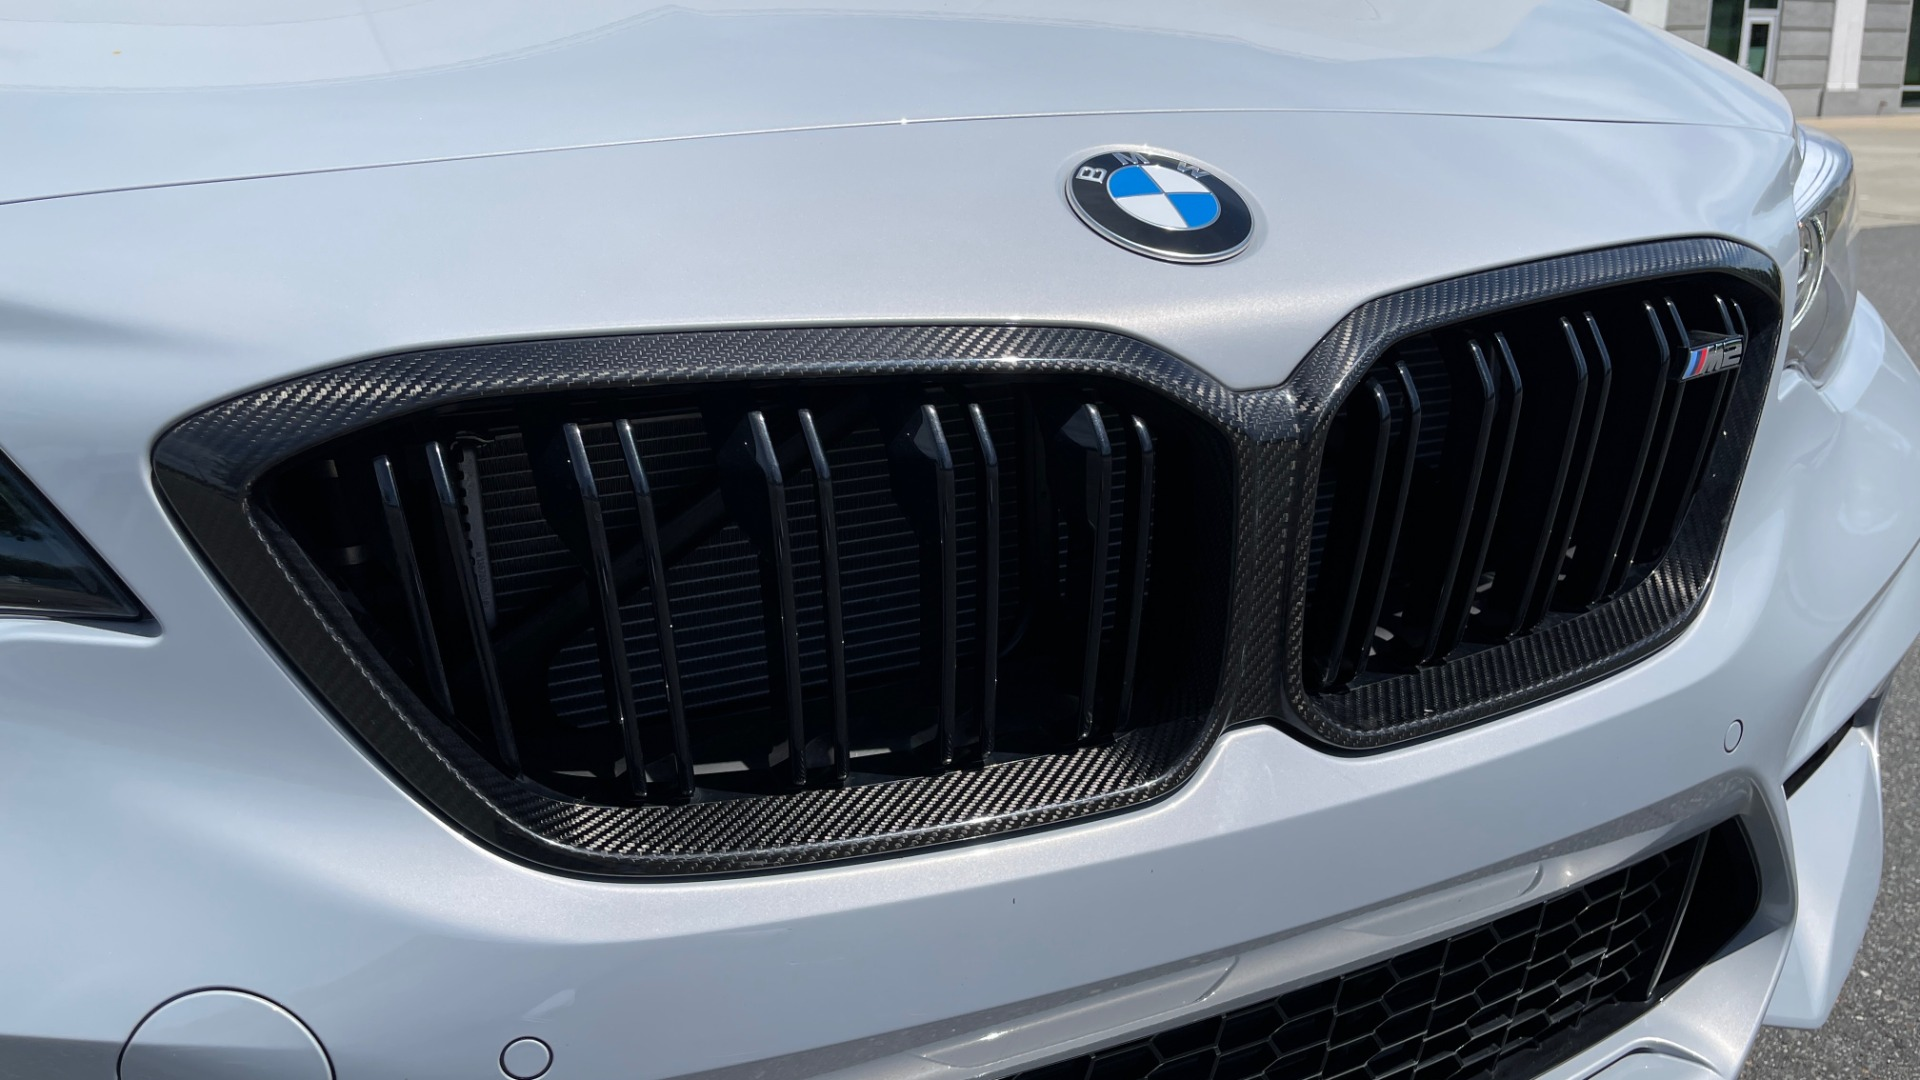 Used 2020 BMW M2 COMPETITION 405HP / COUPE / MANUAL / NAV / H/K SOUND / REARVIEW for sale $64,388 at Formula Imports in Charlotte NC 28227 17